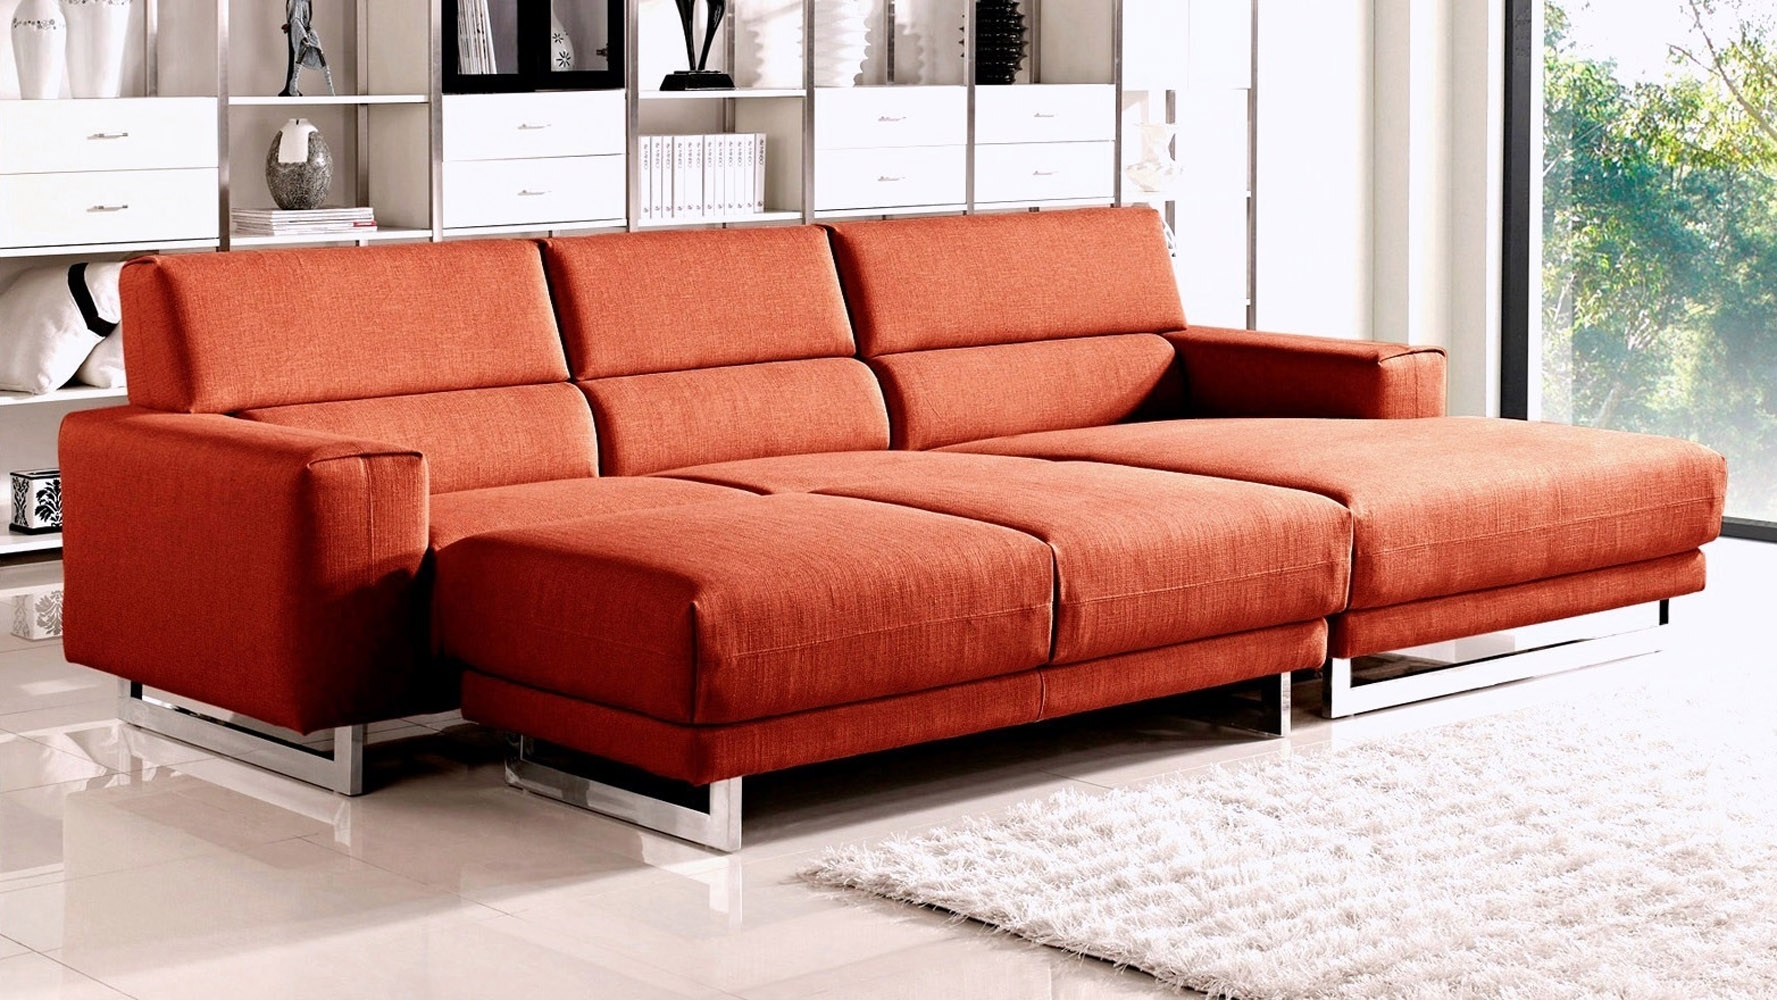 Ottoman Sleeper Sofa, Popular Comfortable Sectional Sofas Fabric With Regard To Sectional Sleeper Sofas With Ottoman (View 12 of 15)